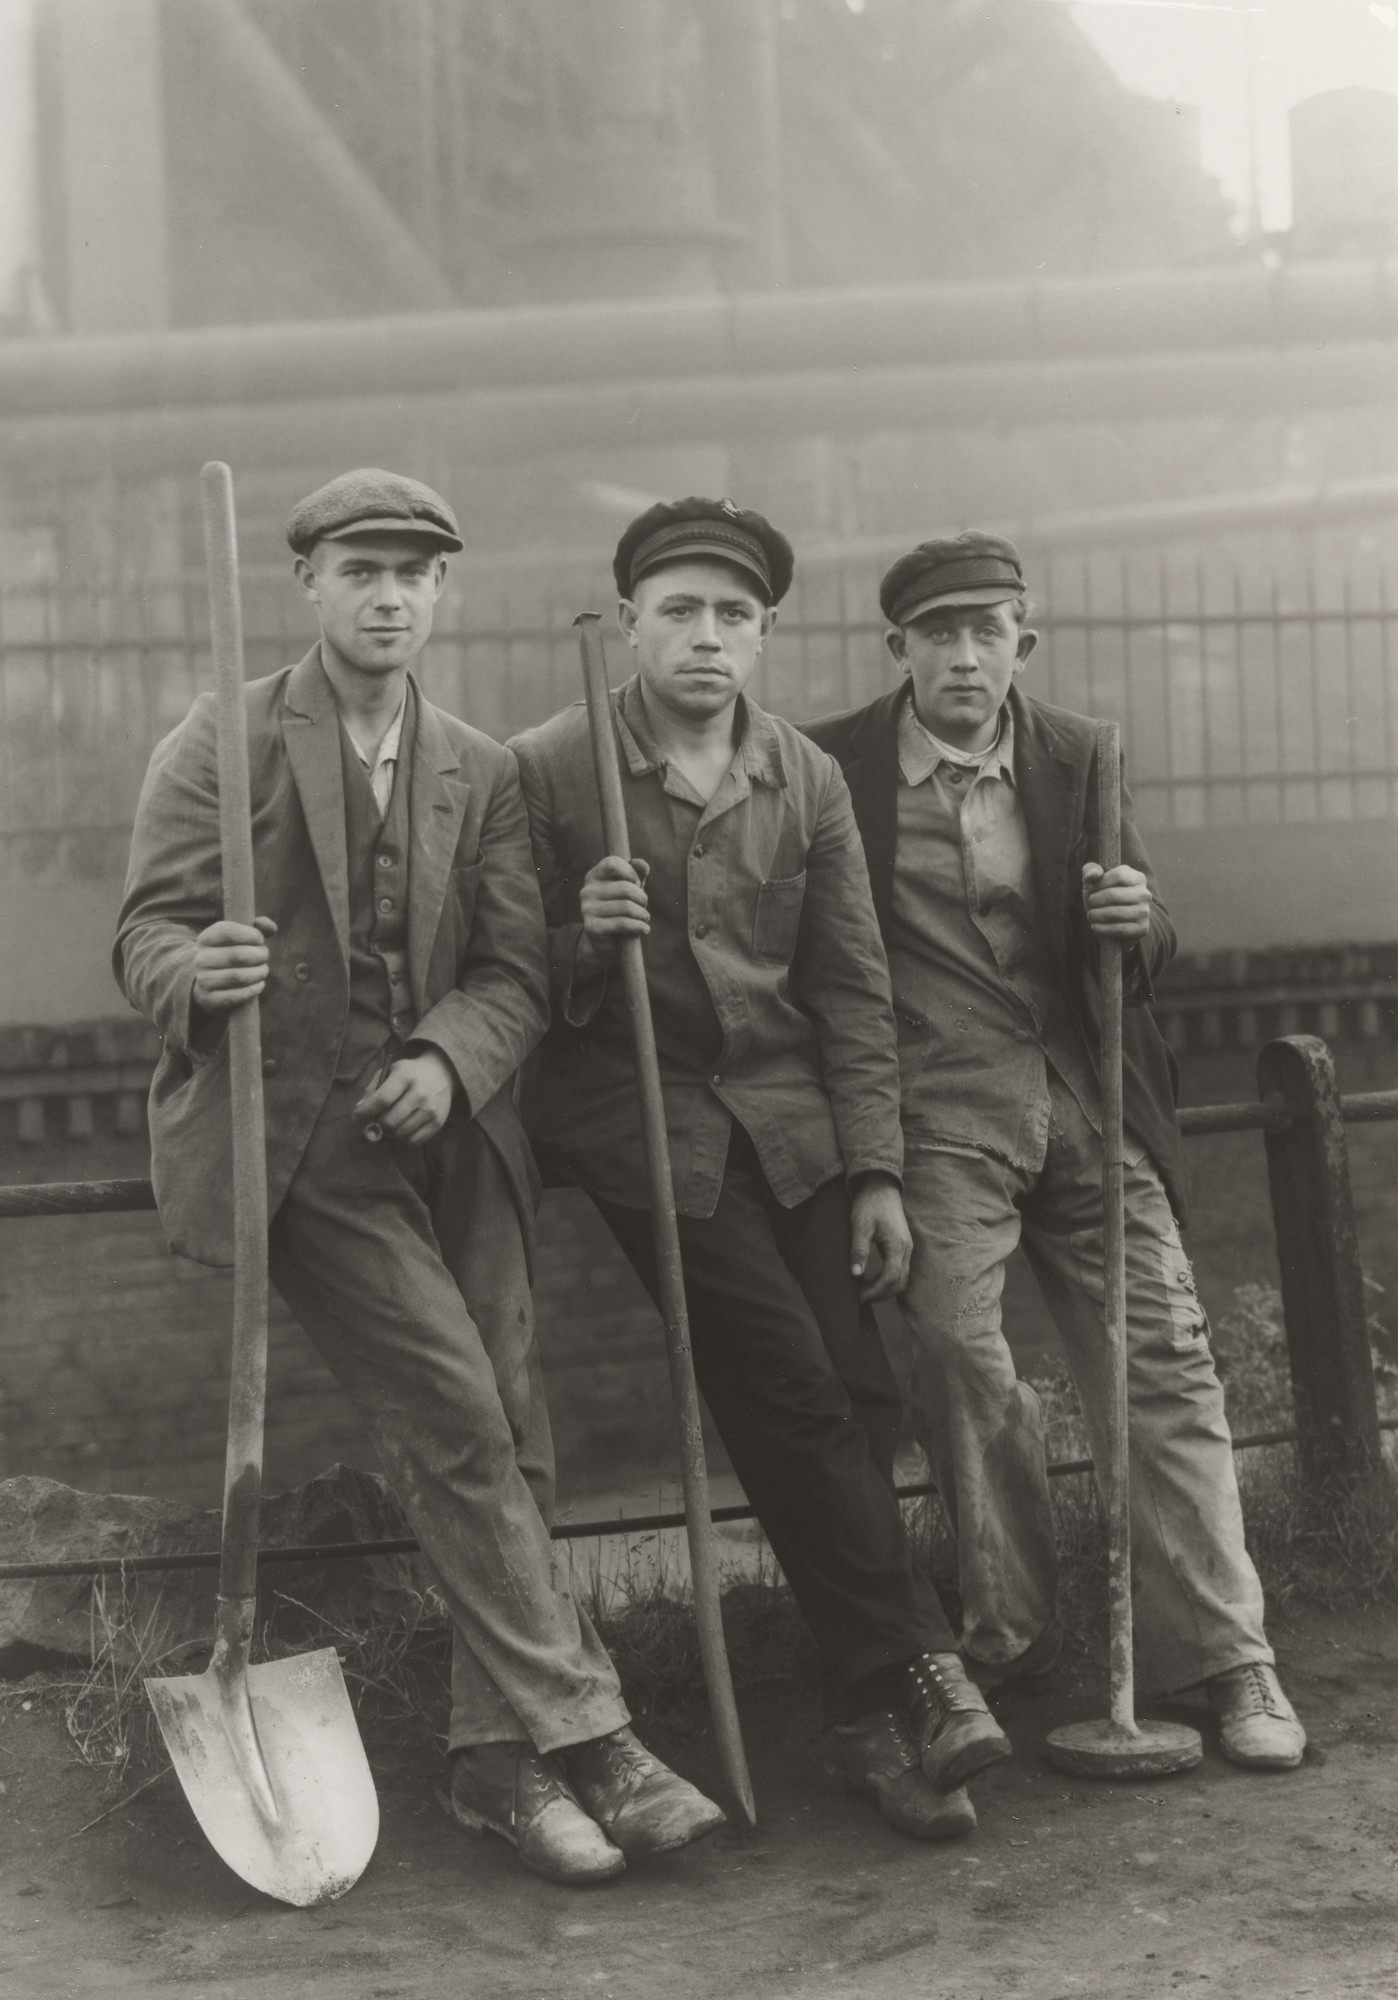 August Sander. Workmen in the Ruhr. c. 1928